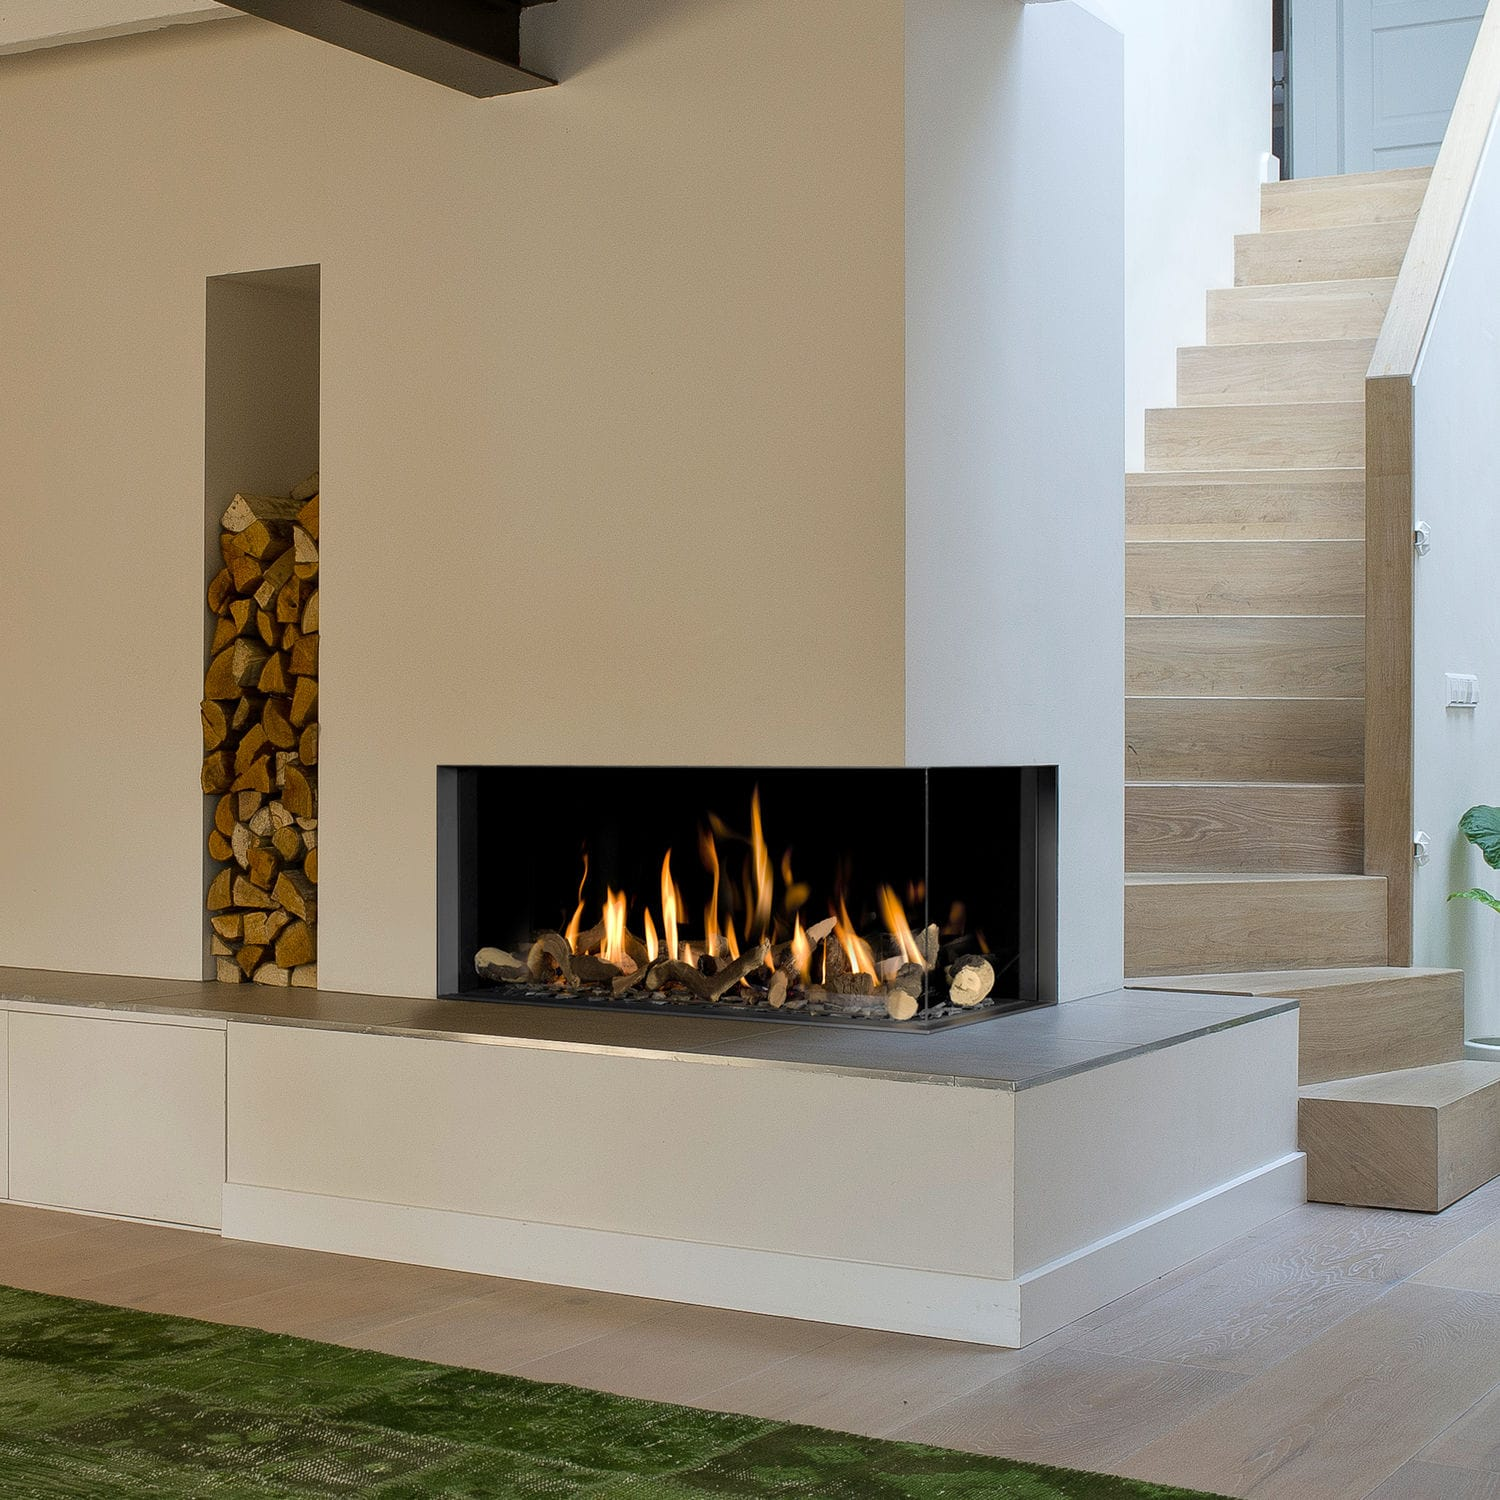 for linear prices design ideas sale gas fireplace home